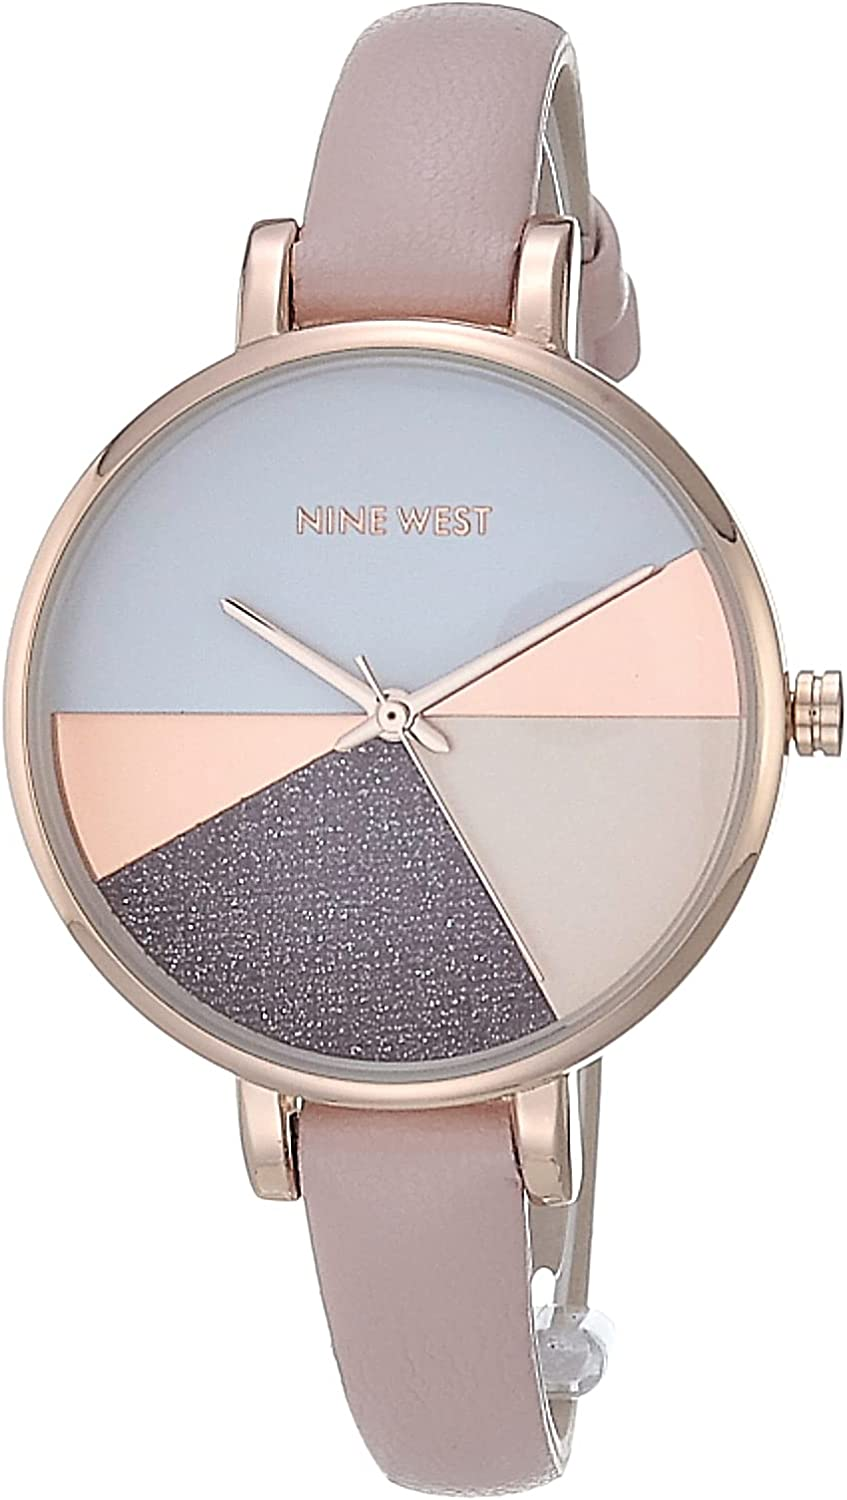 Special price Nine West Women's Strap Watch 35% OFF NW 2412